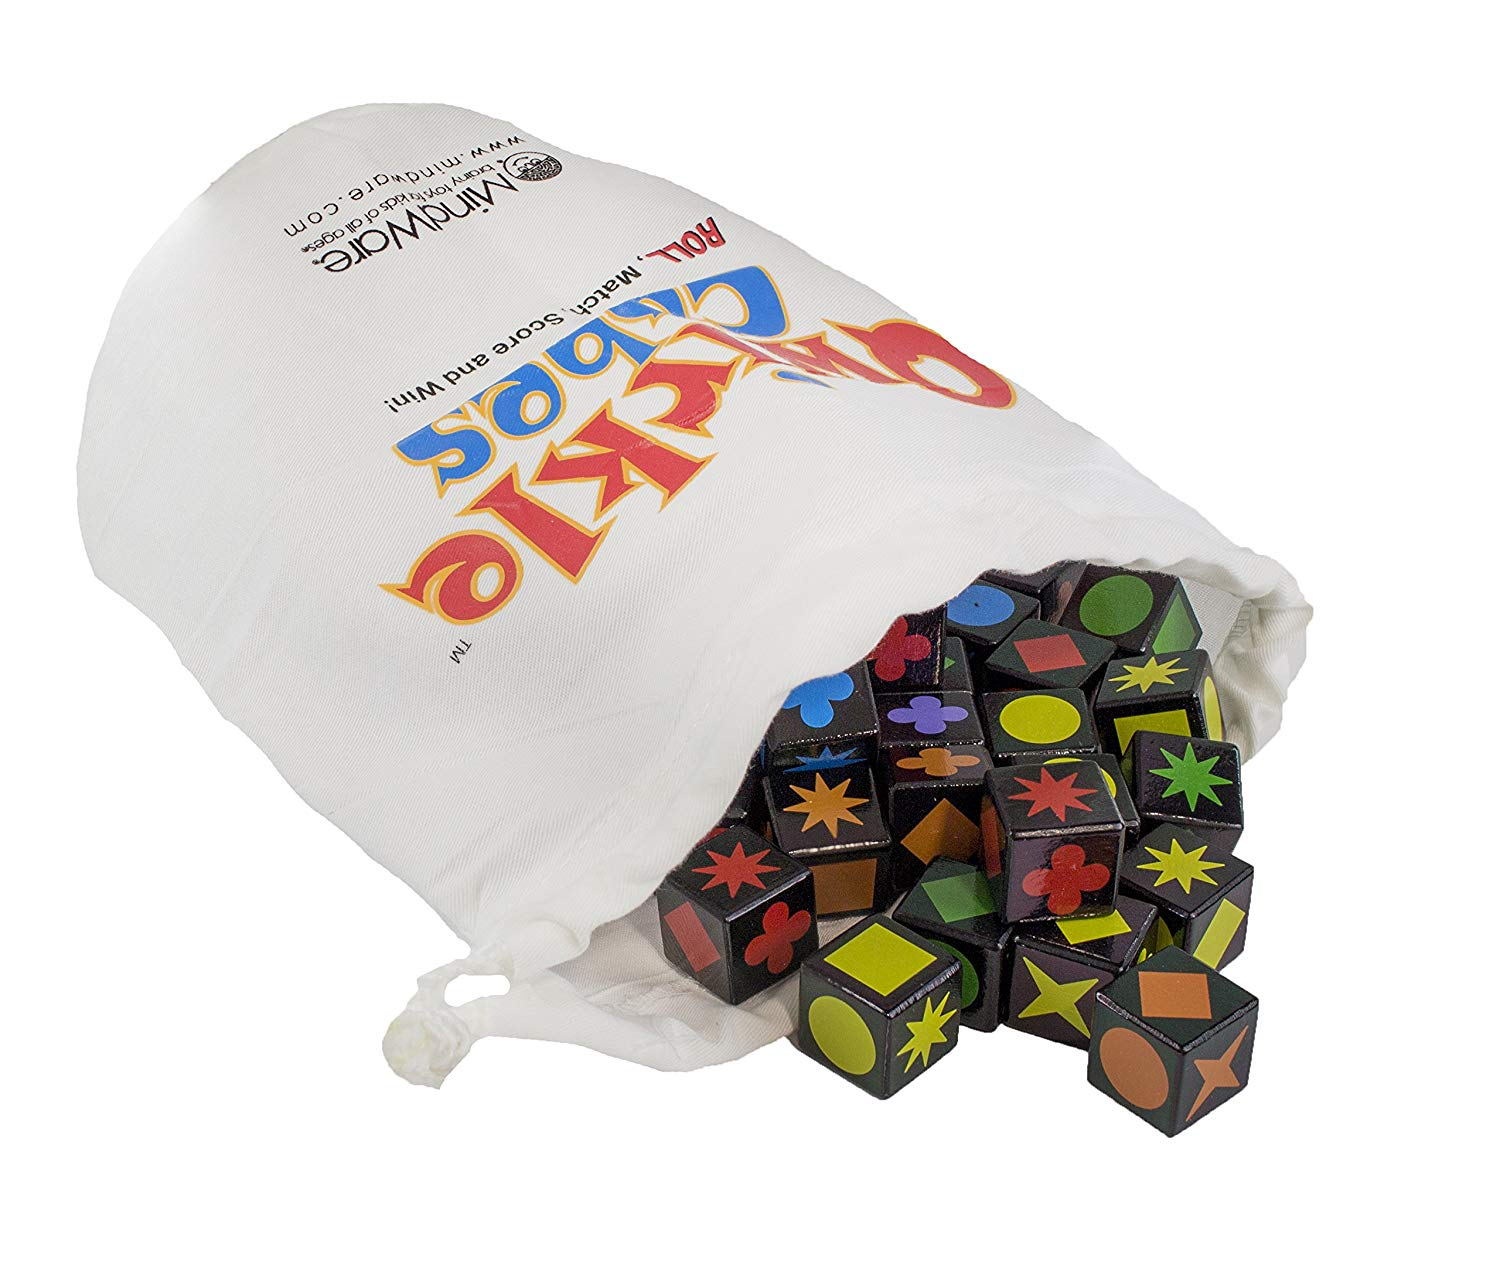 Qwirkle Cubes Contents